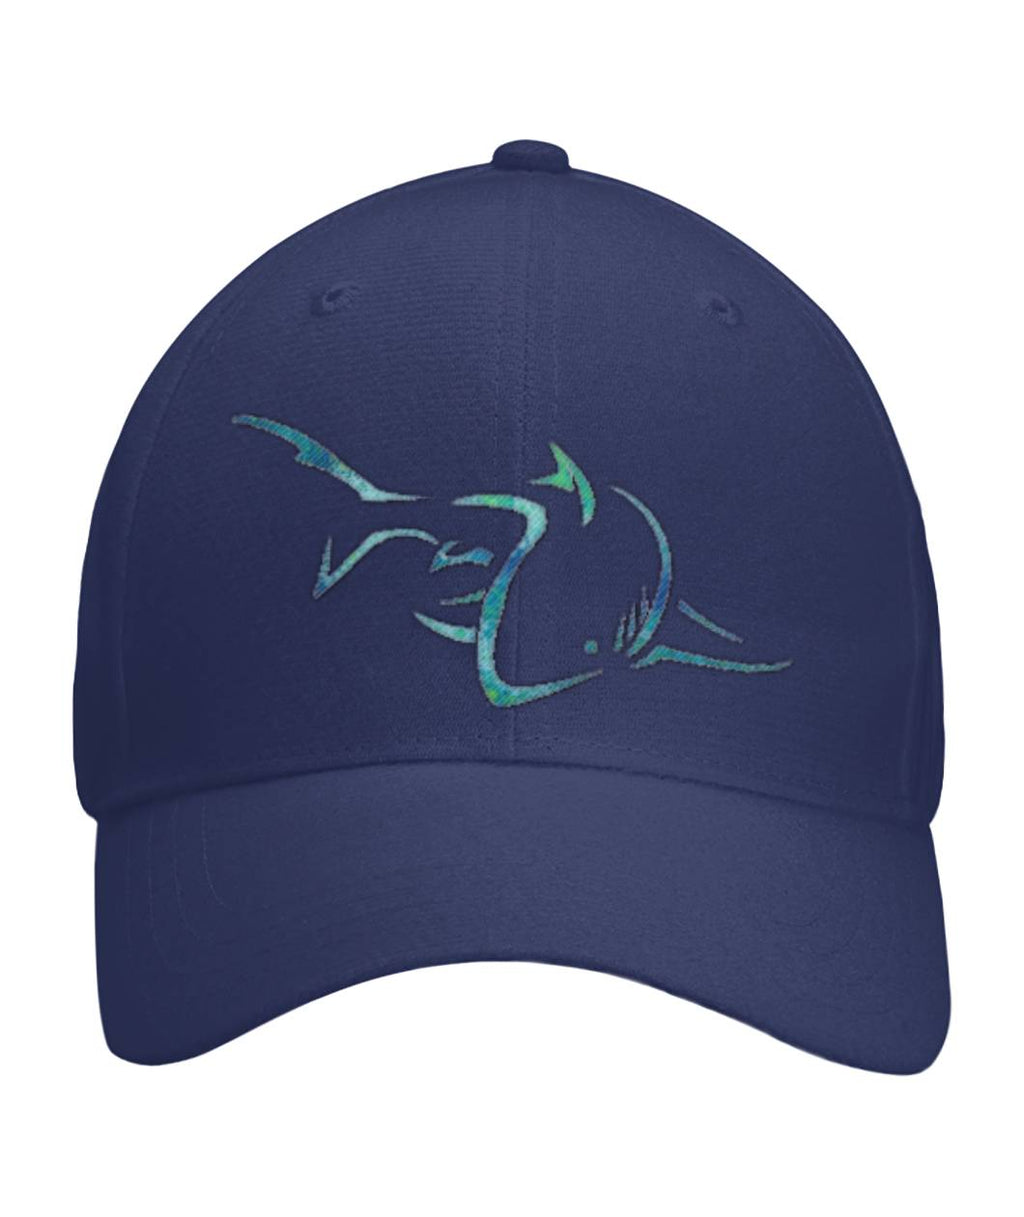 Shark Baseball Cap - Connected Clothing Company